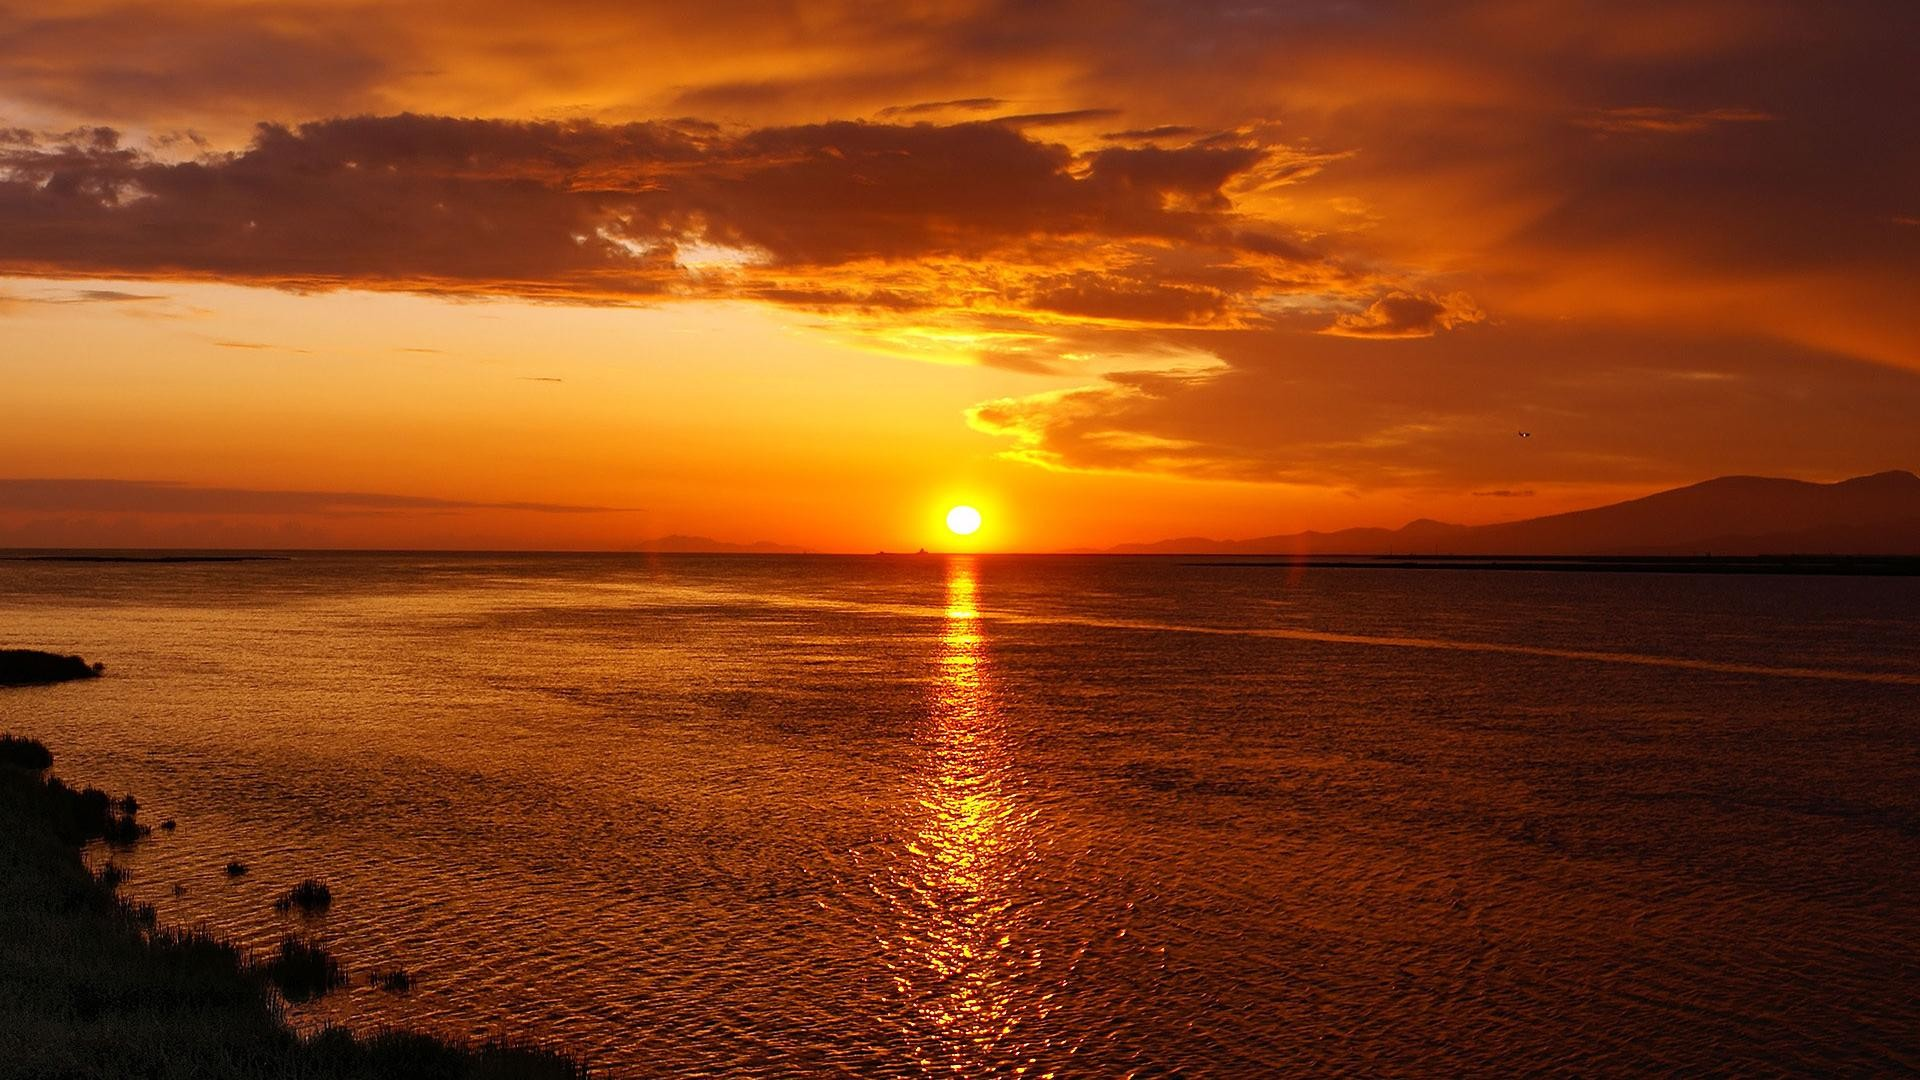 … Beautiful Sunset Wallpapers HD 0 HTML code. Download 1080P High  Definition Backgrounds